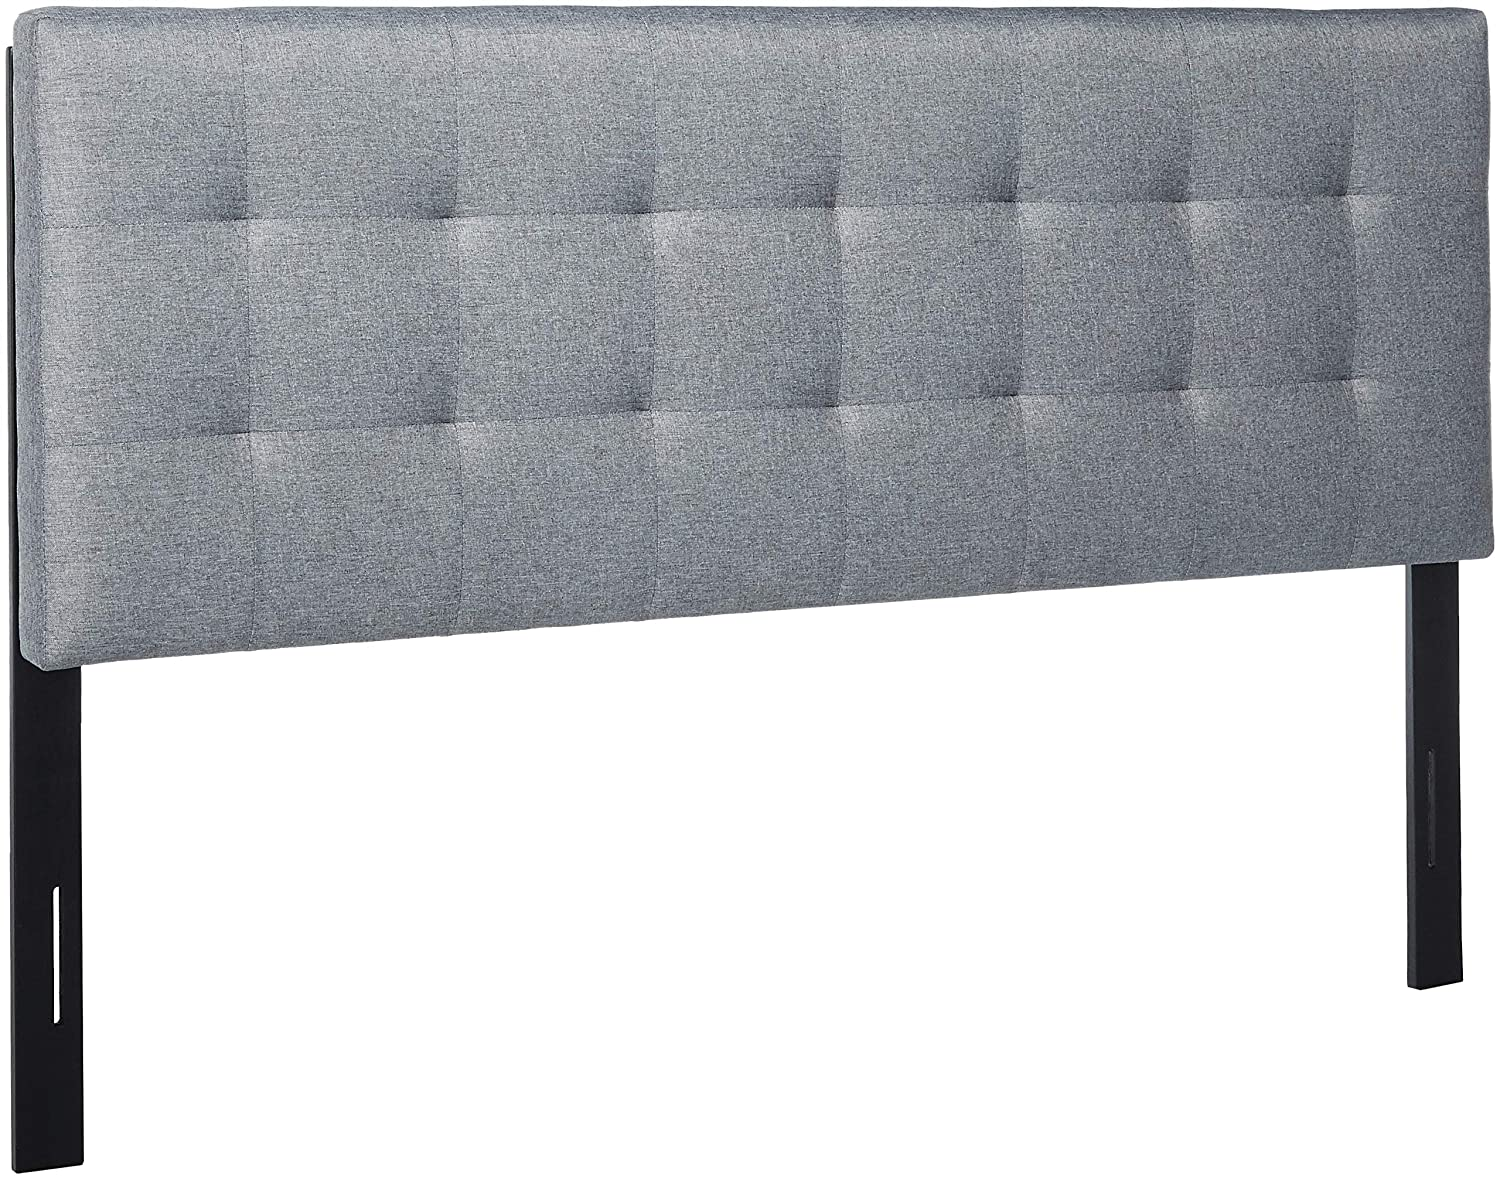 POLY & BARK EM-297-GRY Guilia Square-Stitched Headboard, Queen Size, Gray Poly and Bark